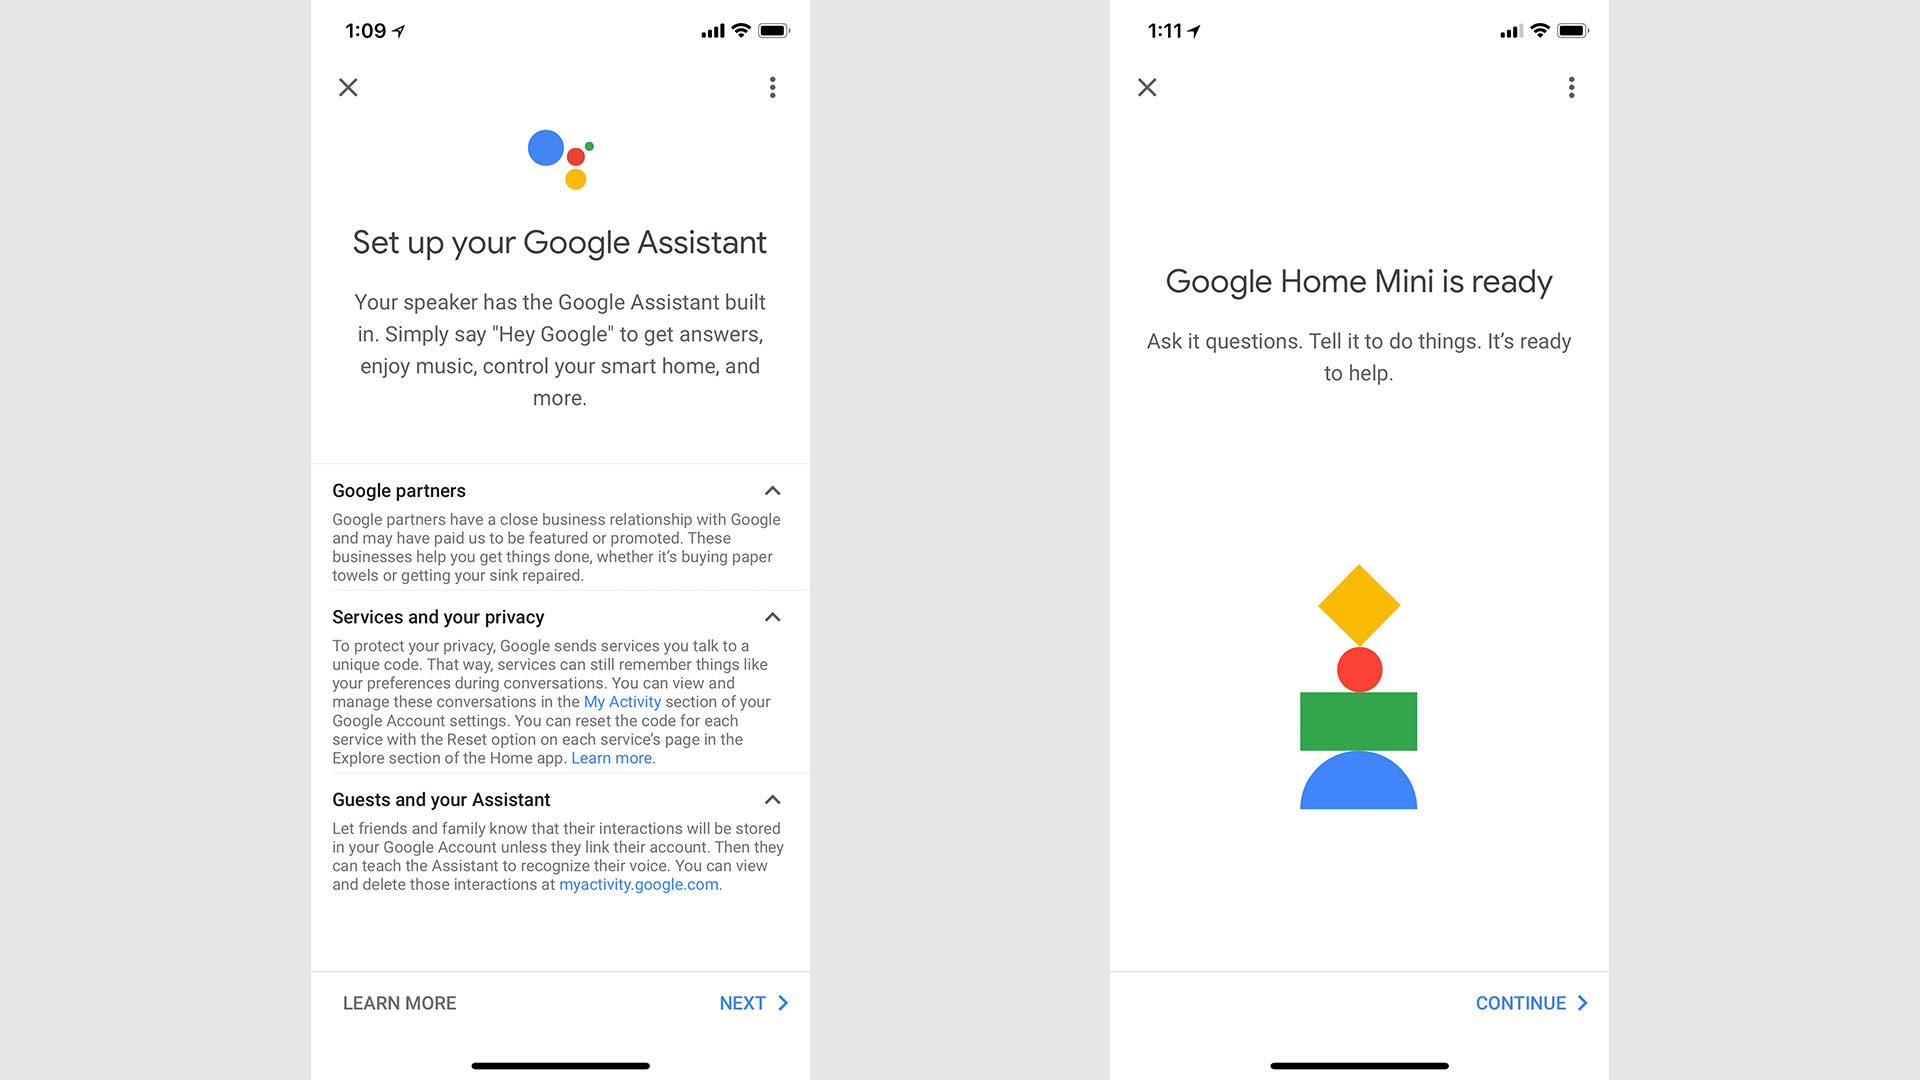 Opinion: Living with Google Home Mini sparked my interest in